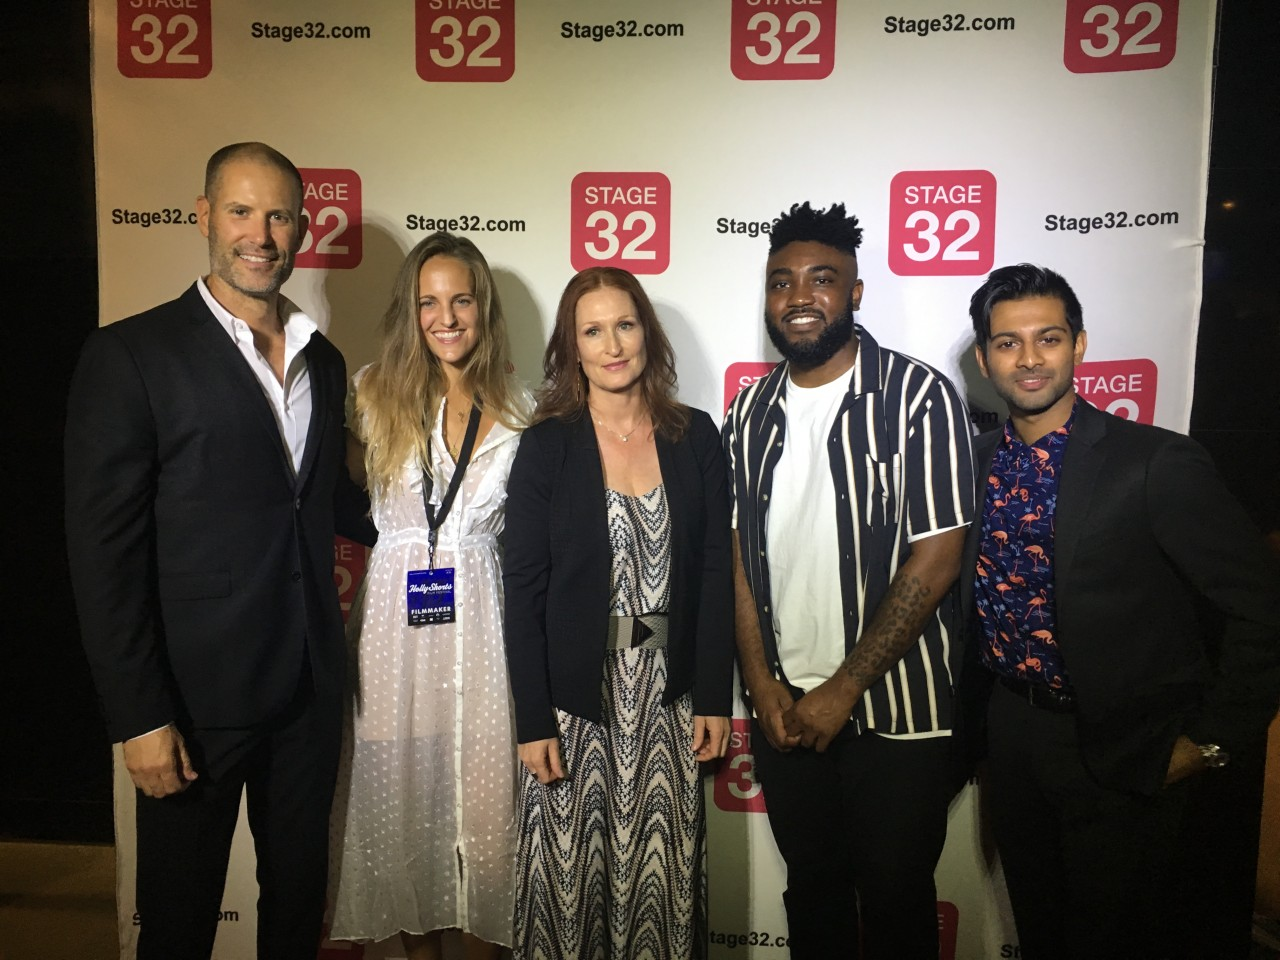 Stage 32 Joins Forces with Trinidad and Tobago Film Company